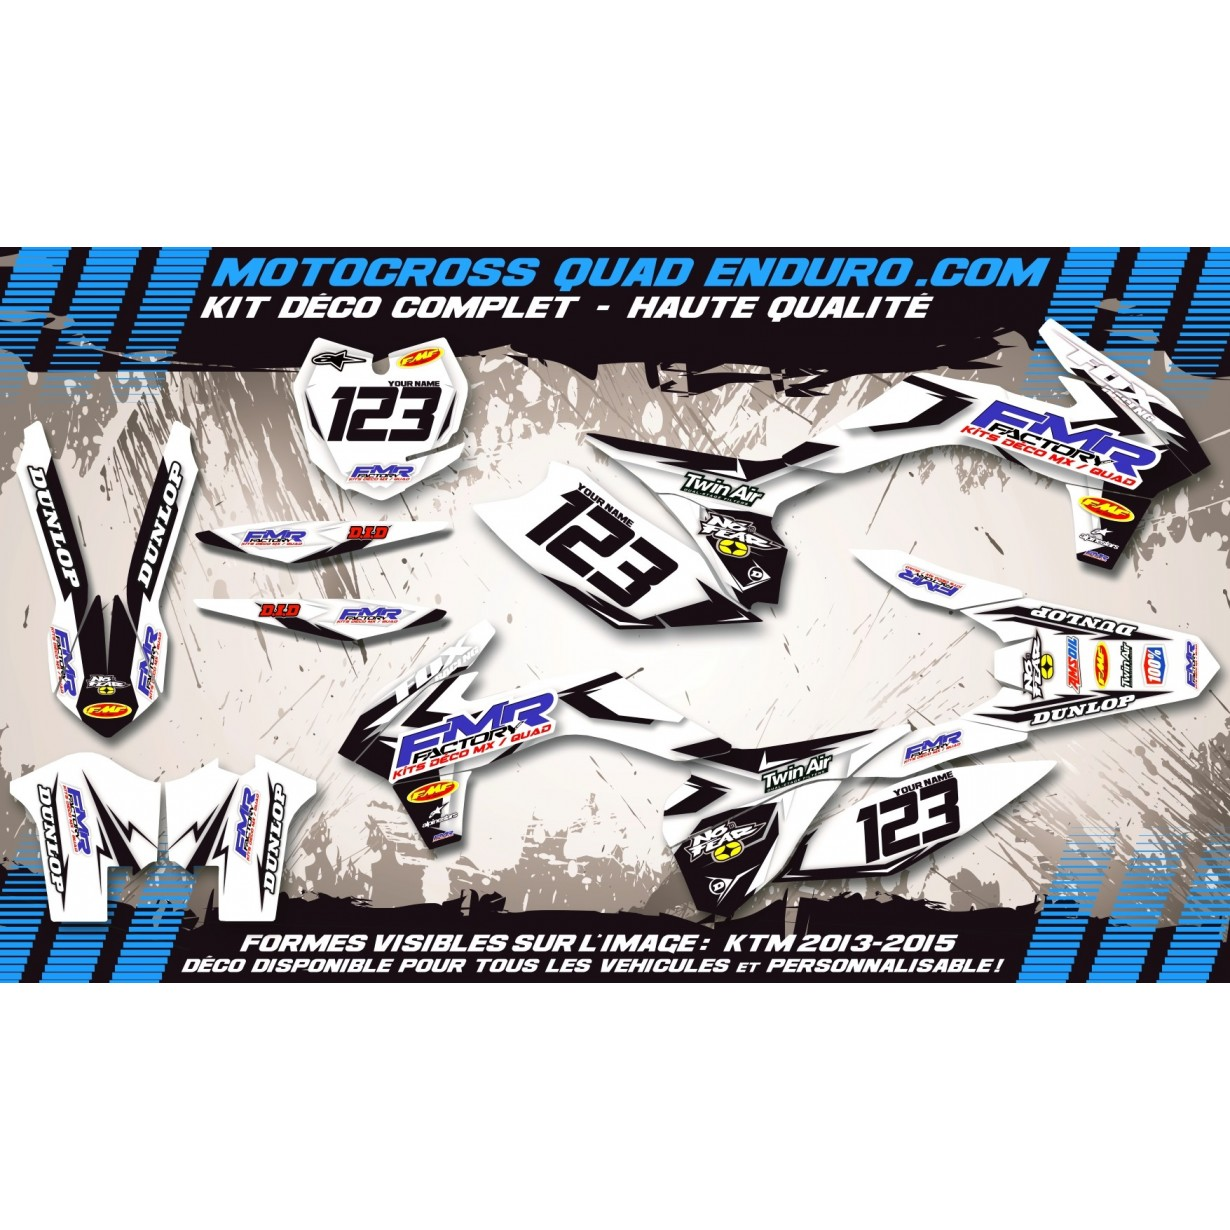 KIT DÉCO Perso 150-230 CRF 03-07 Fmr factory WT Edition MA13WT